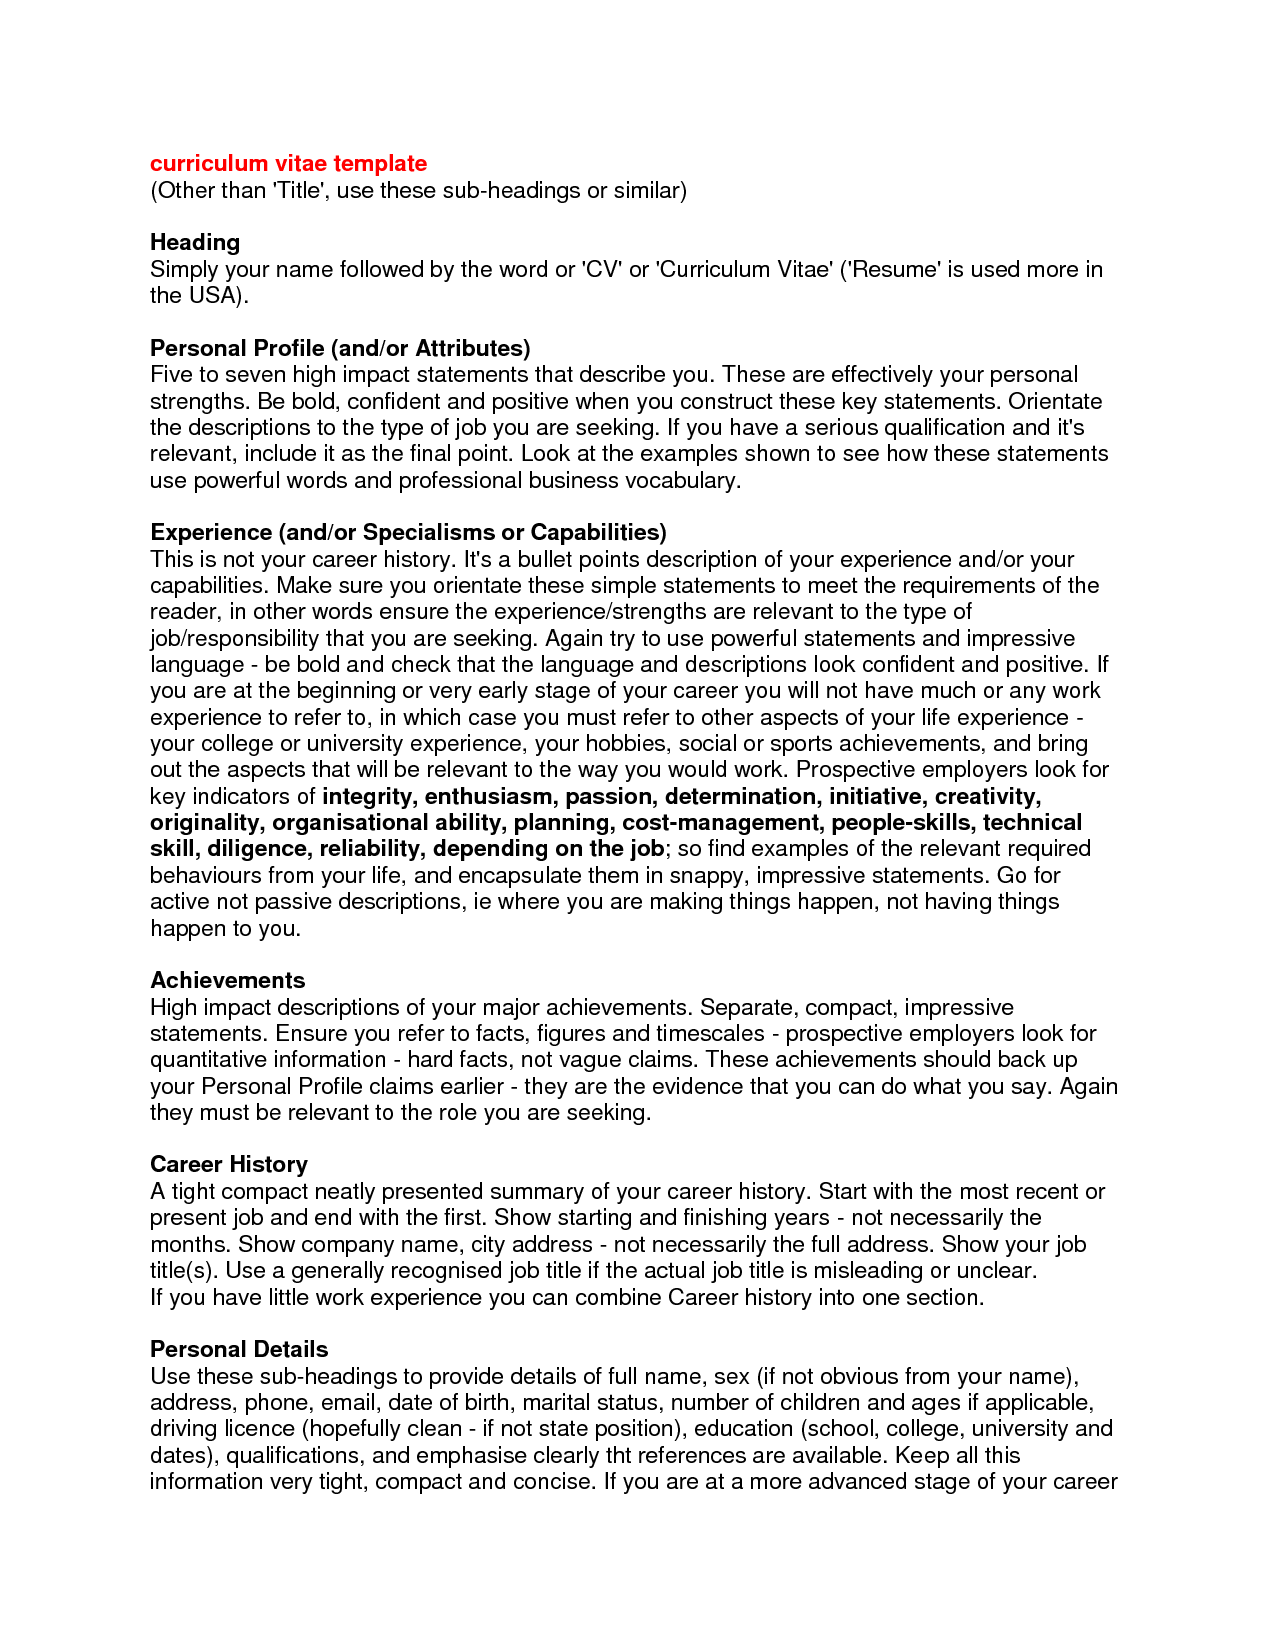 curriculum vitae personal statement samples http www